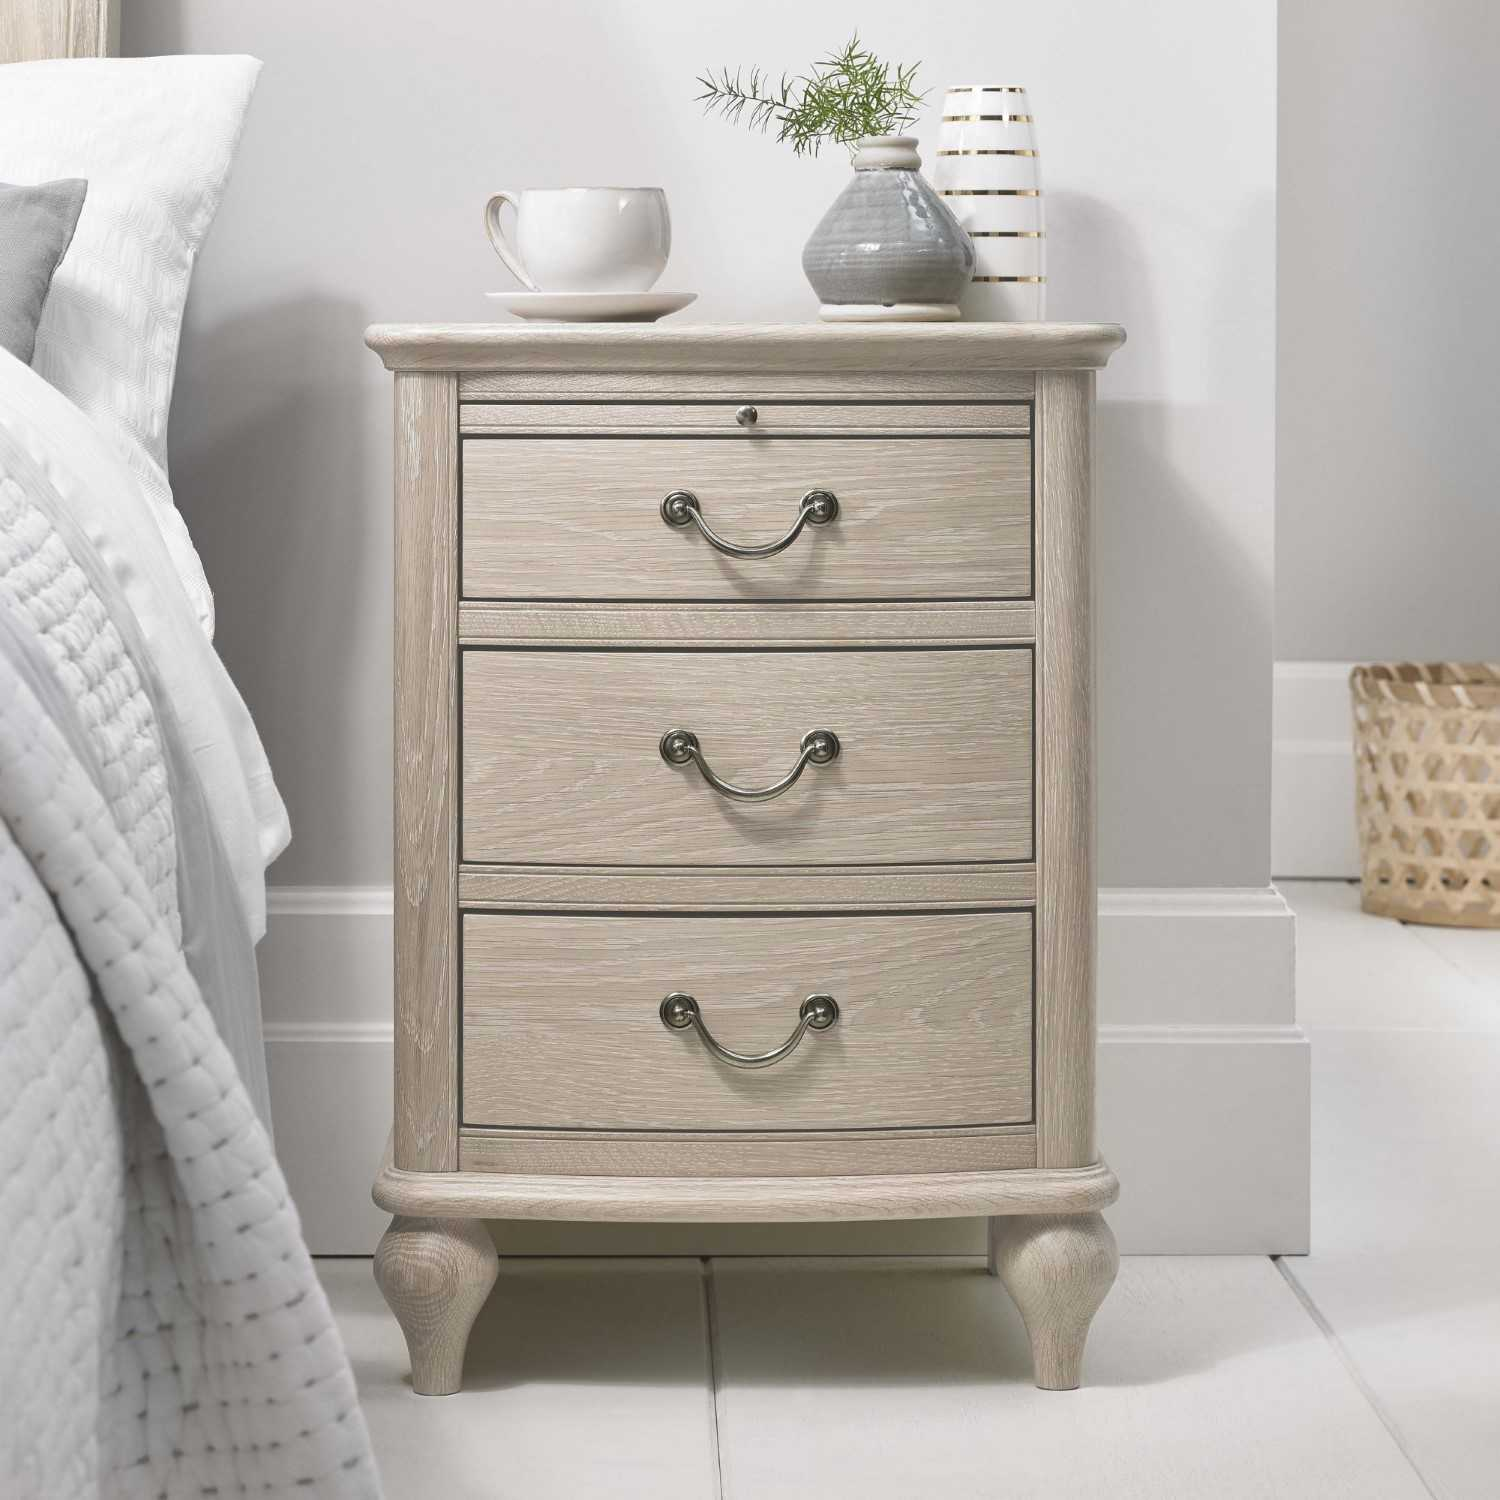 Bordeaux Chalk Oak Wood Lacquered Finish 3 Drawer Bedroom Nightstand 66 X 47cm